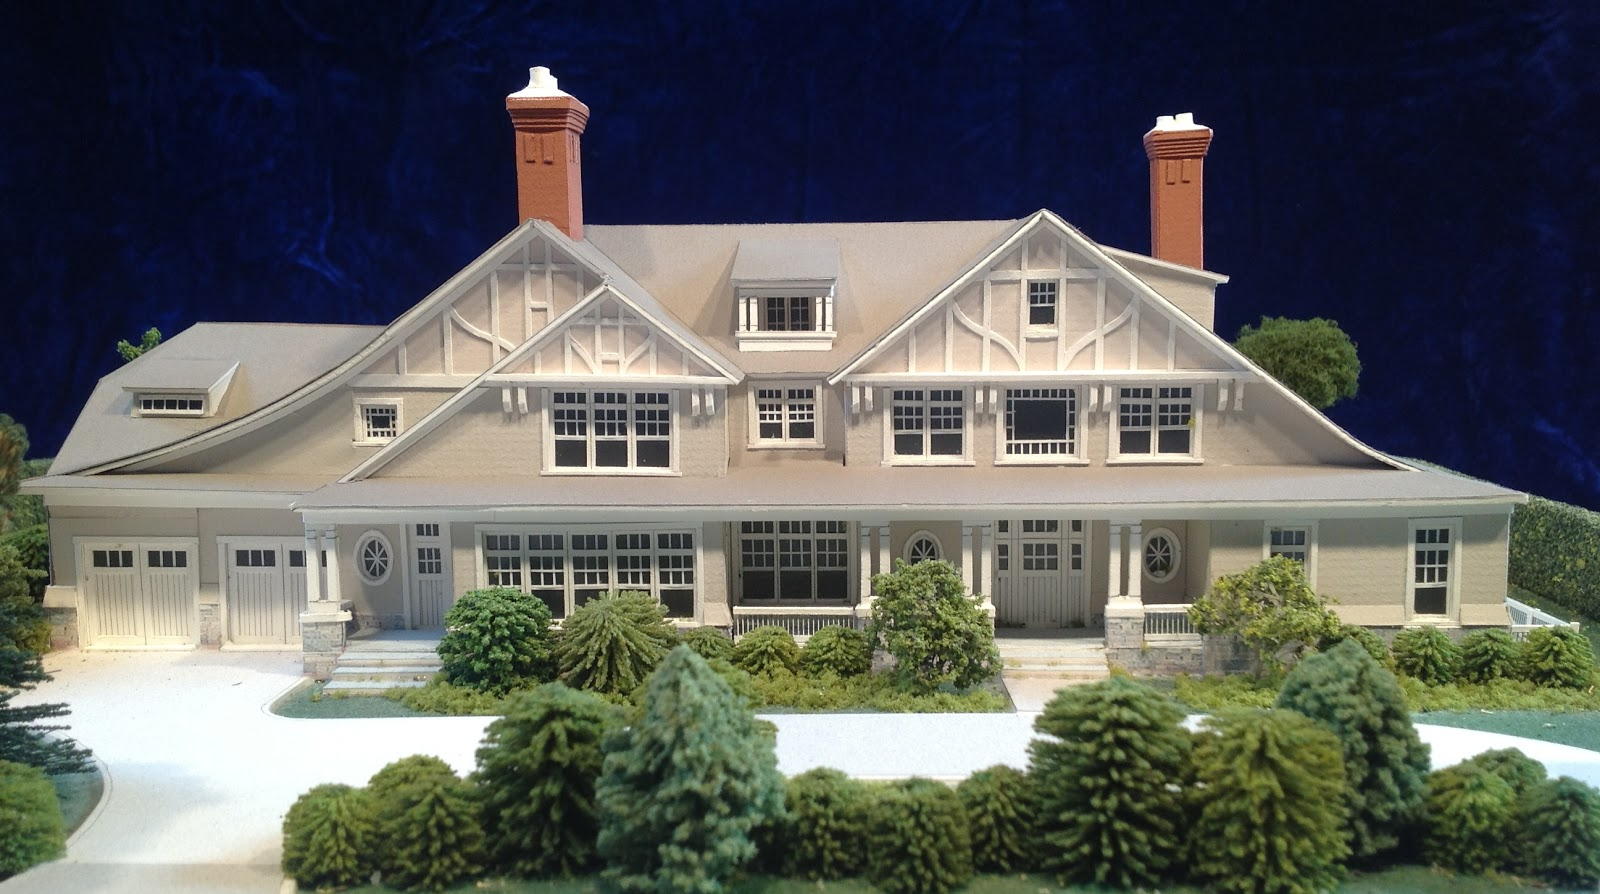 architectural house models of houses in the hamptons long On architecture house models